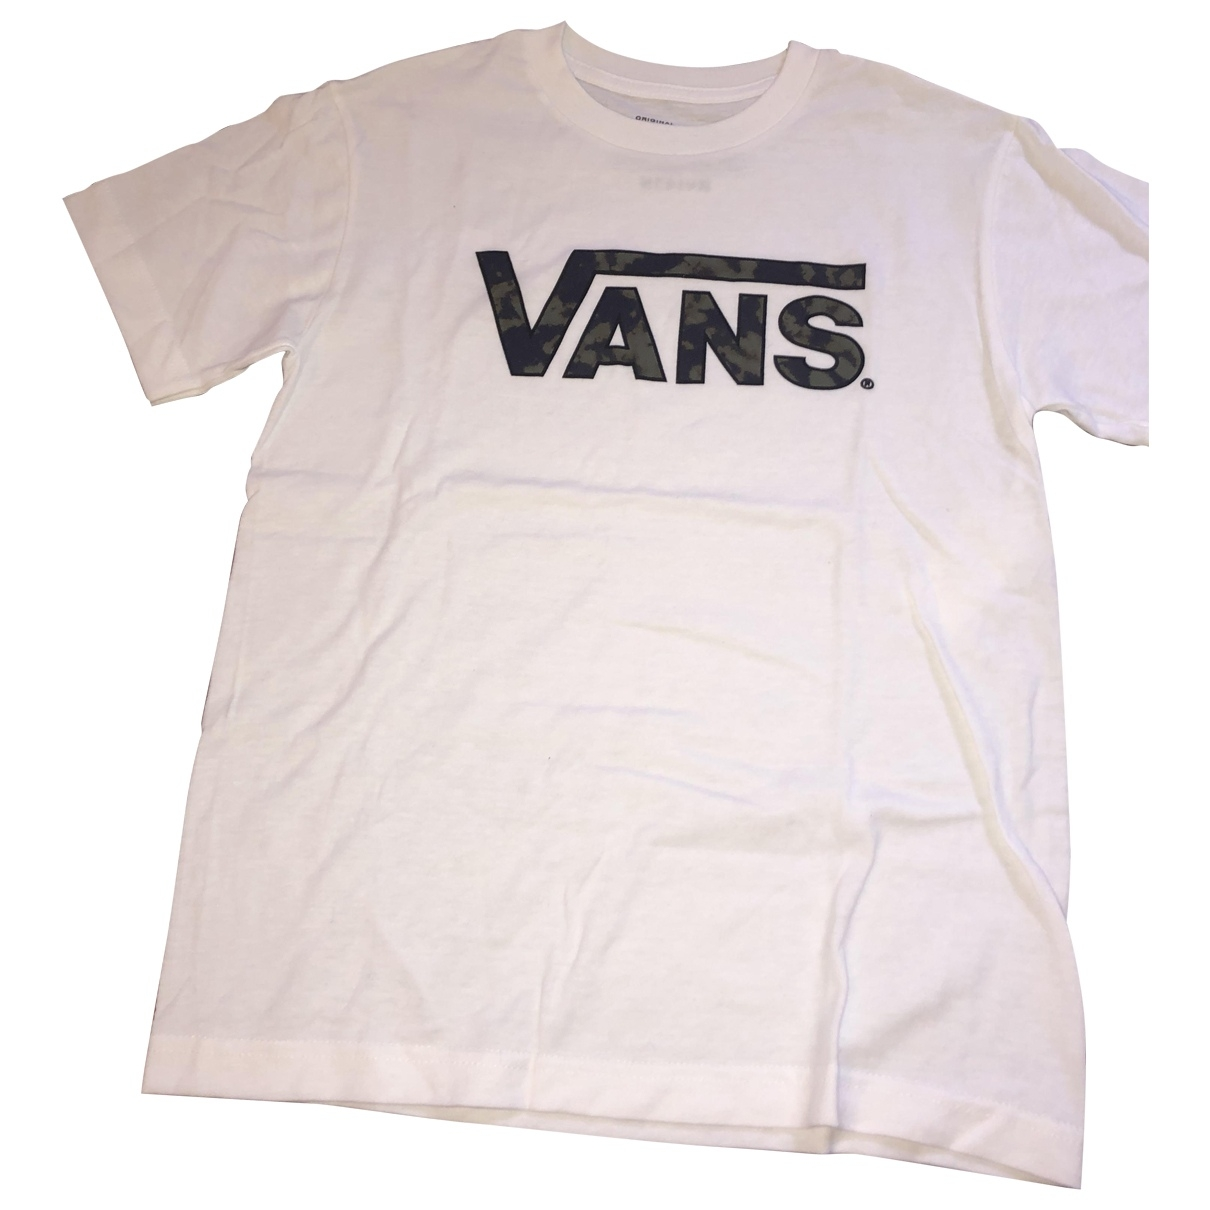 Vans \N White Cotton  top for Kids 14 years - S UK